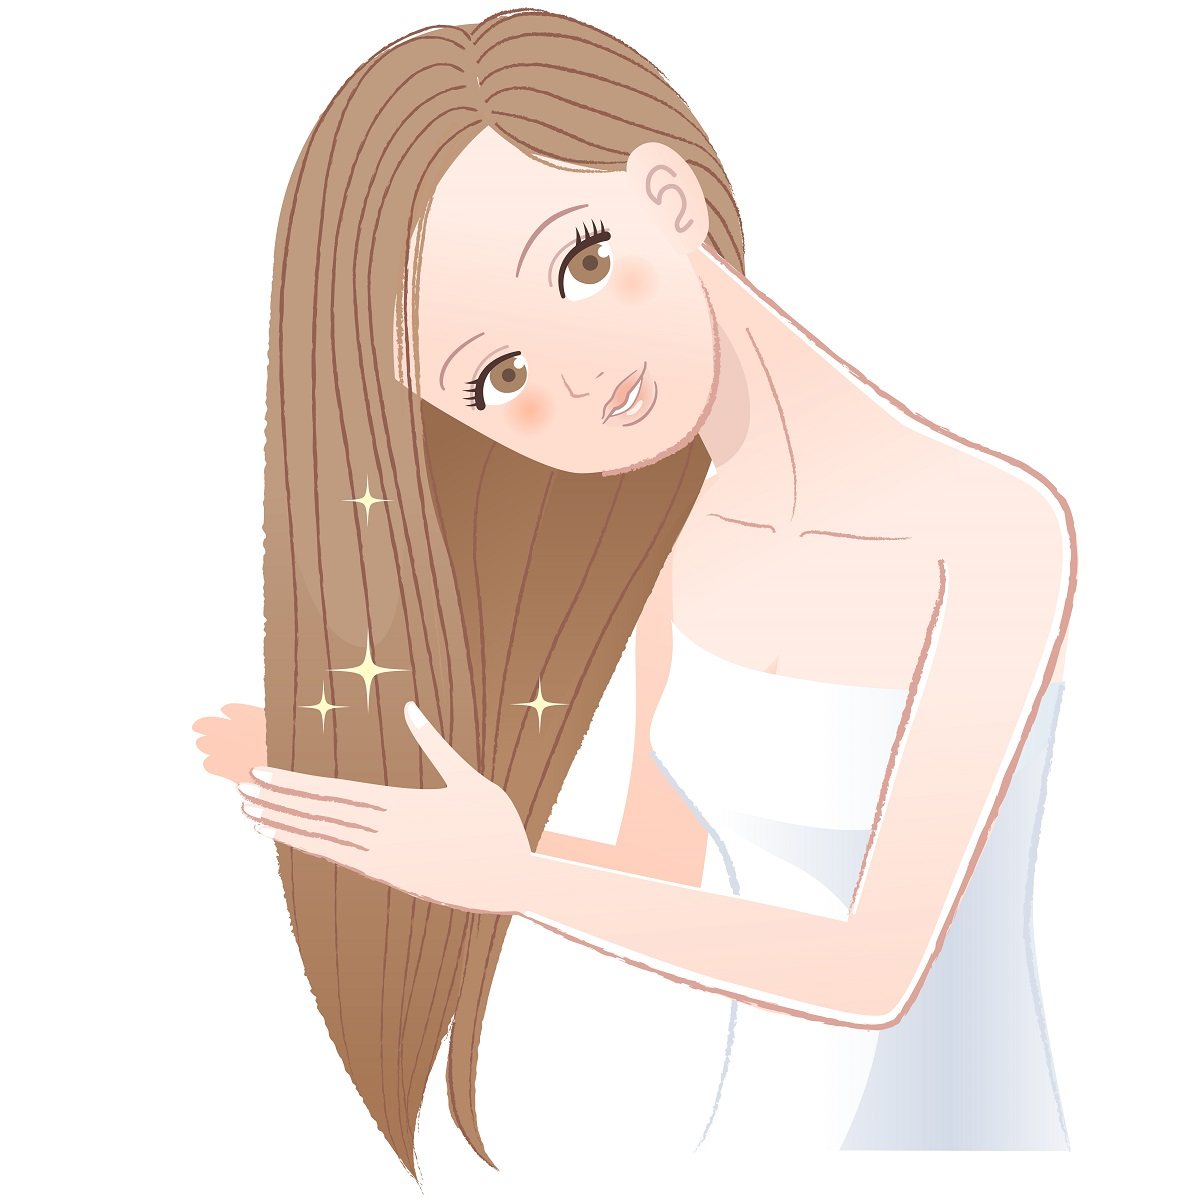 5. Oil your hair when needed